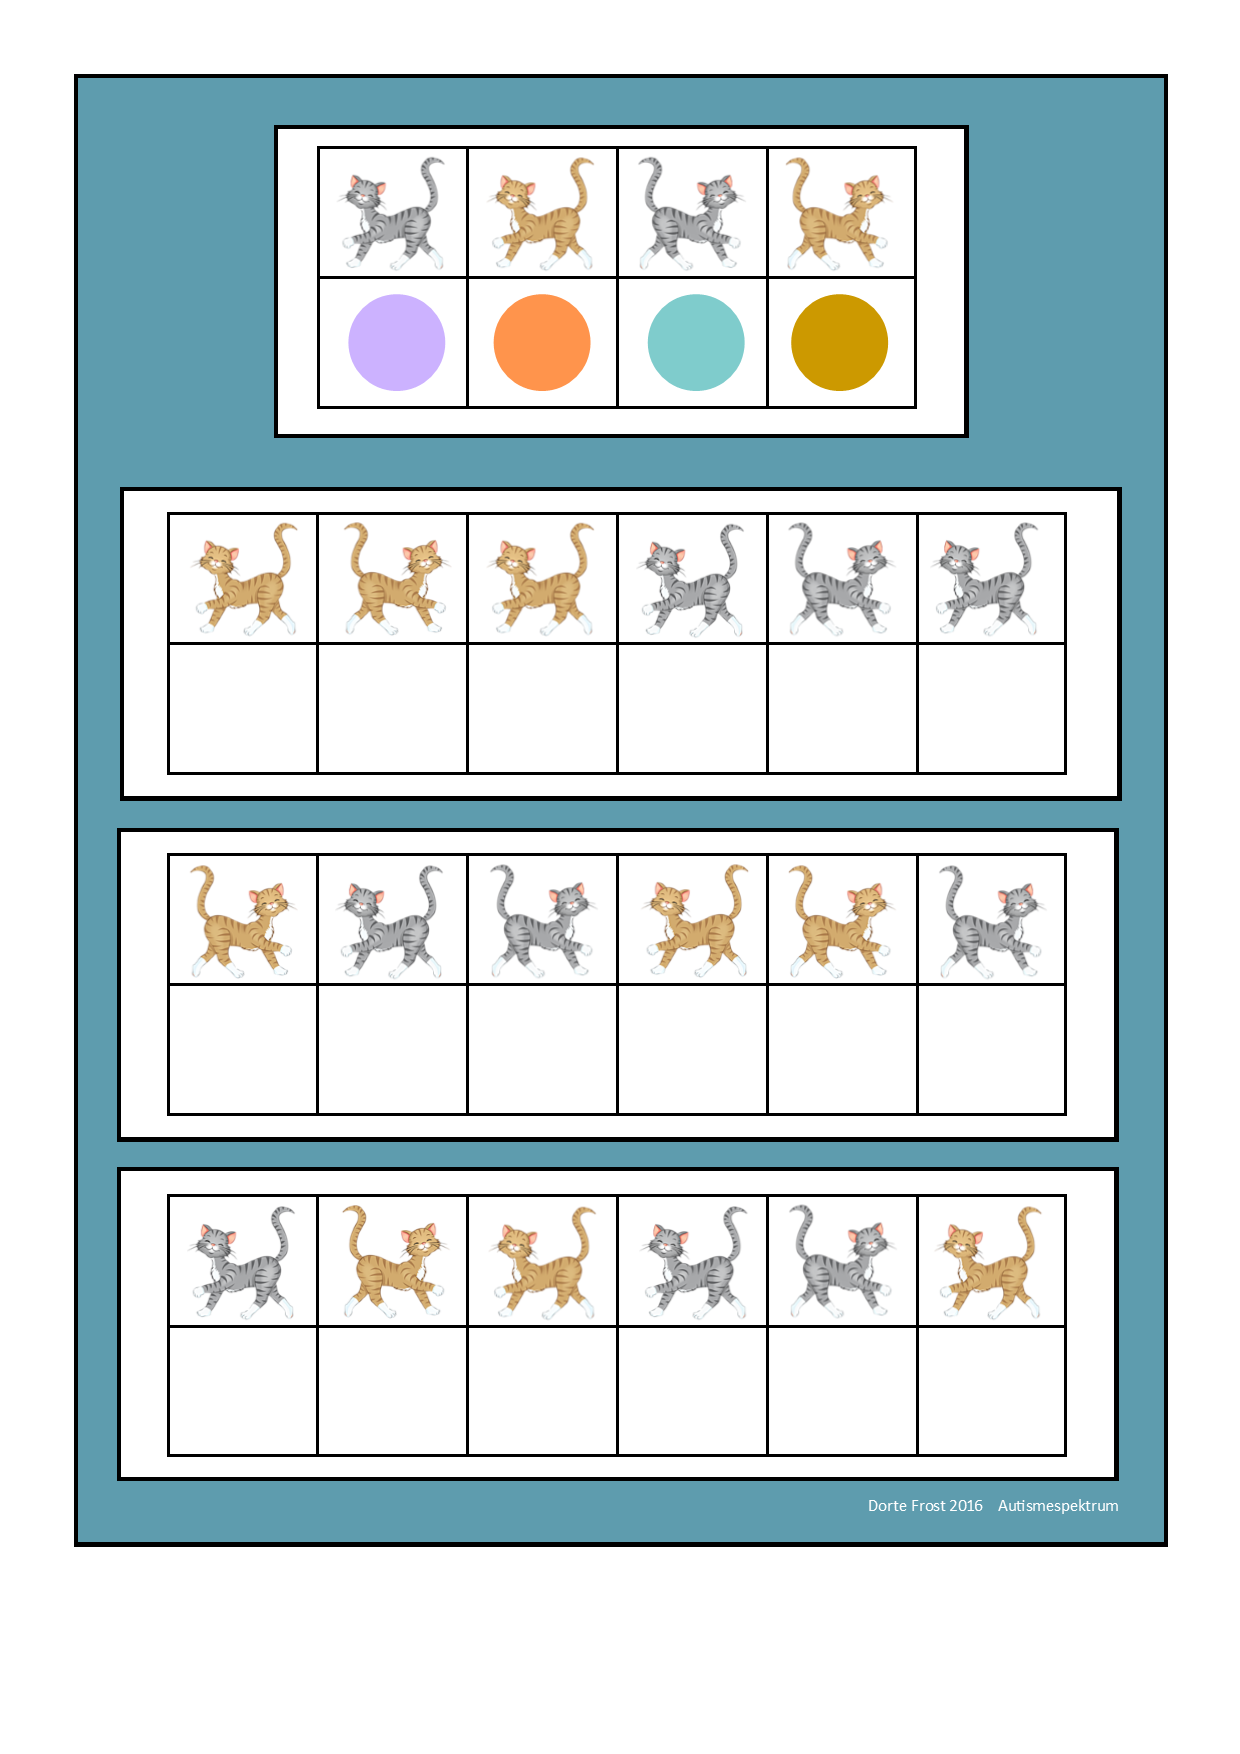 Board For The Cat Visual Perception Game Find The